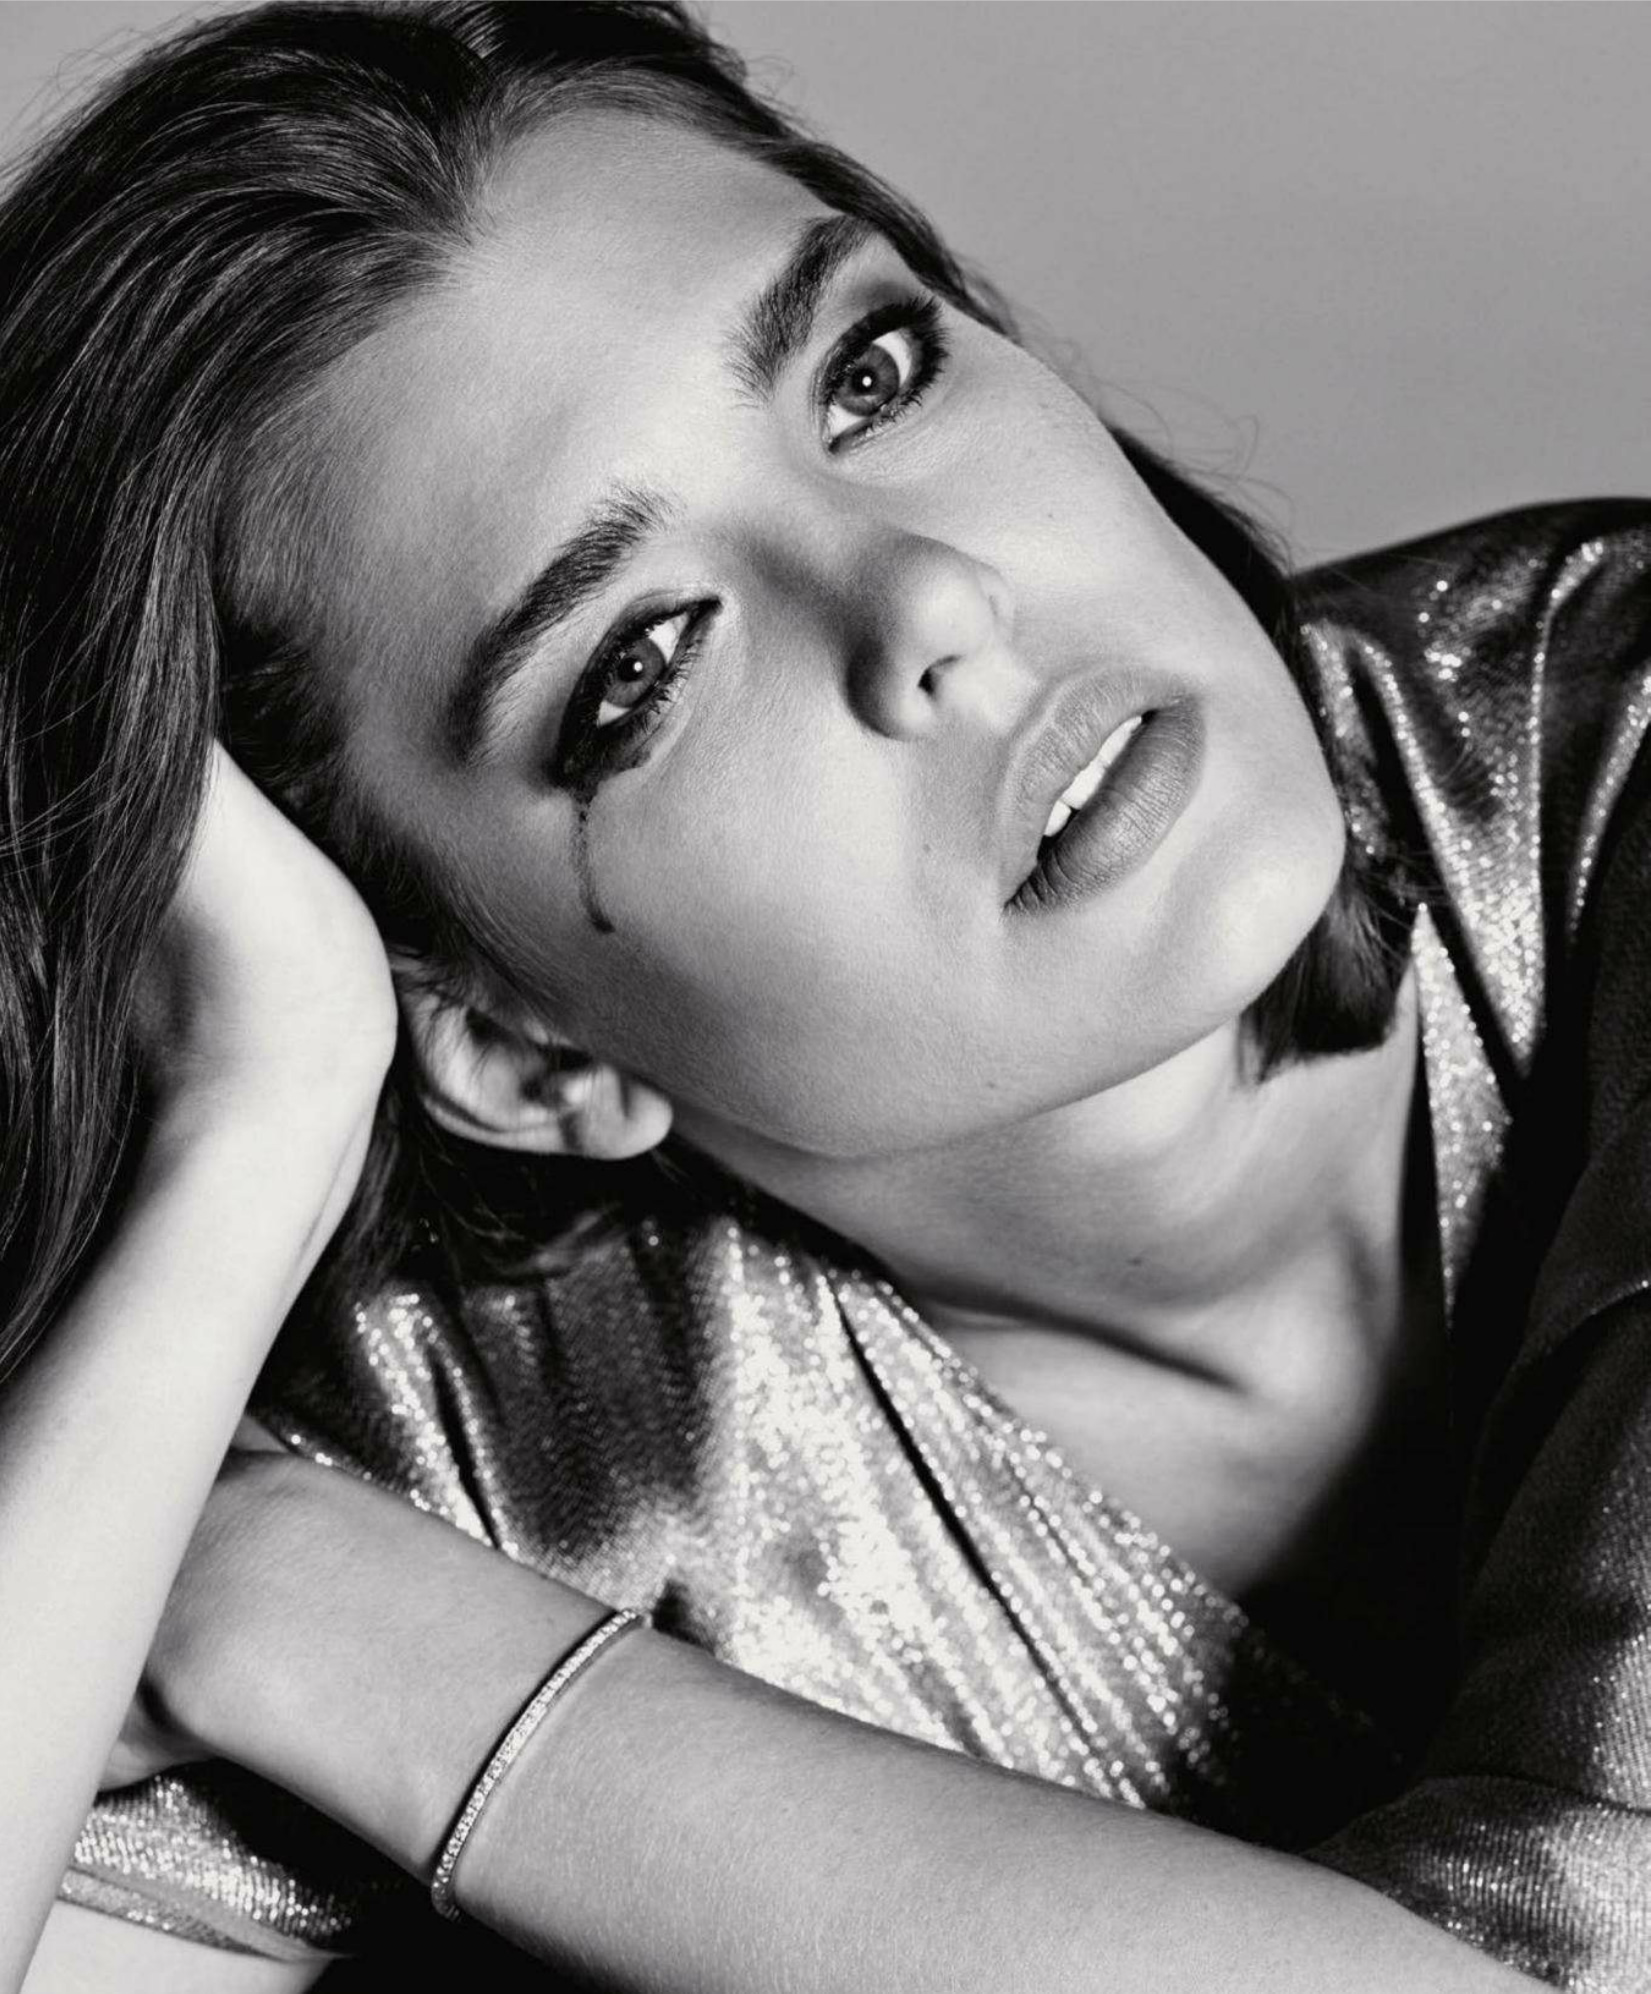 Charlotte Casiraghi by Kacper Kasprzyk for Harper's Bazaar US October 2013 (3)